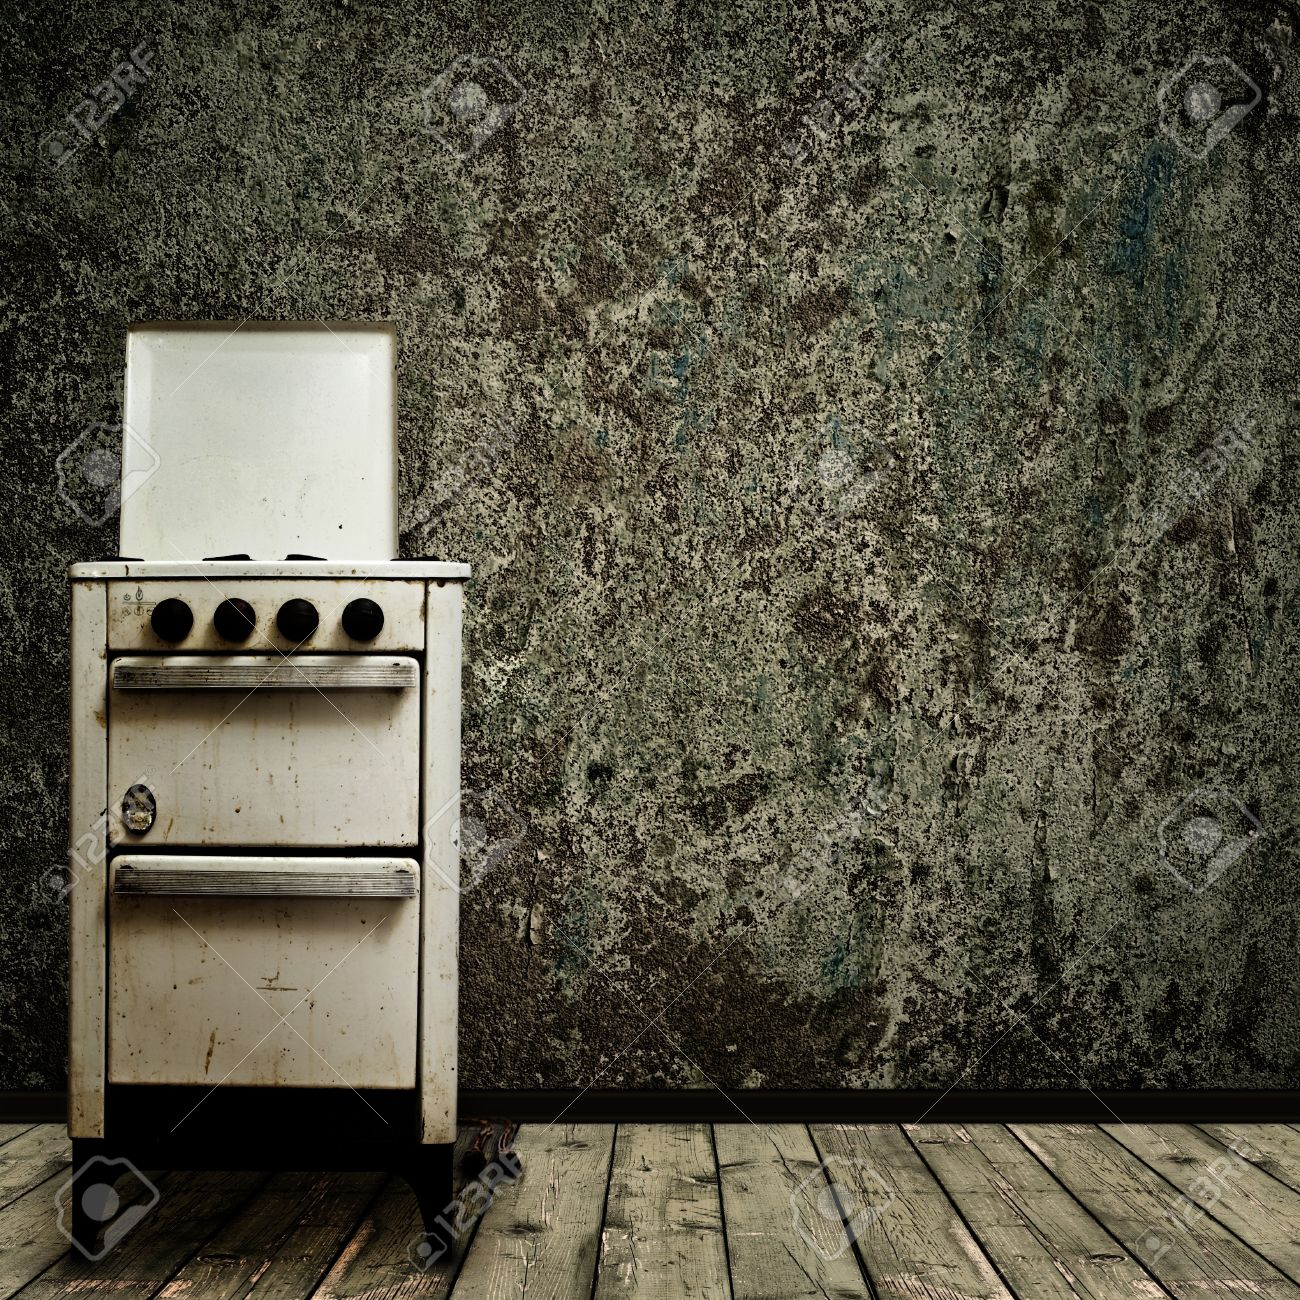 Kitchen Wall Background old gas stove over the grunge wall background stock photo, picture